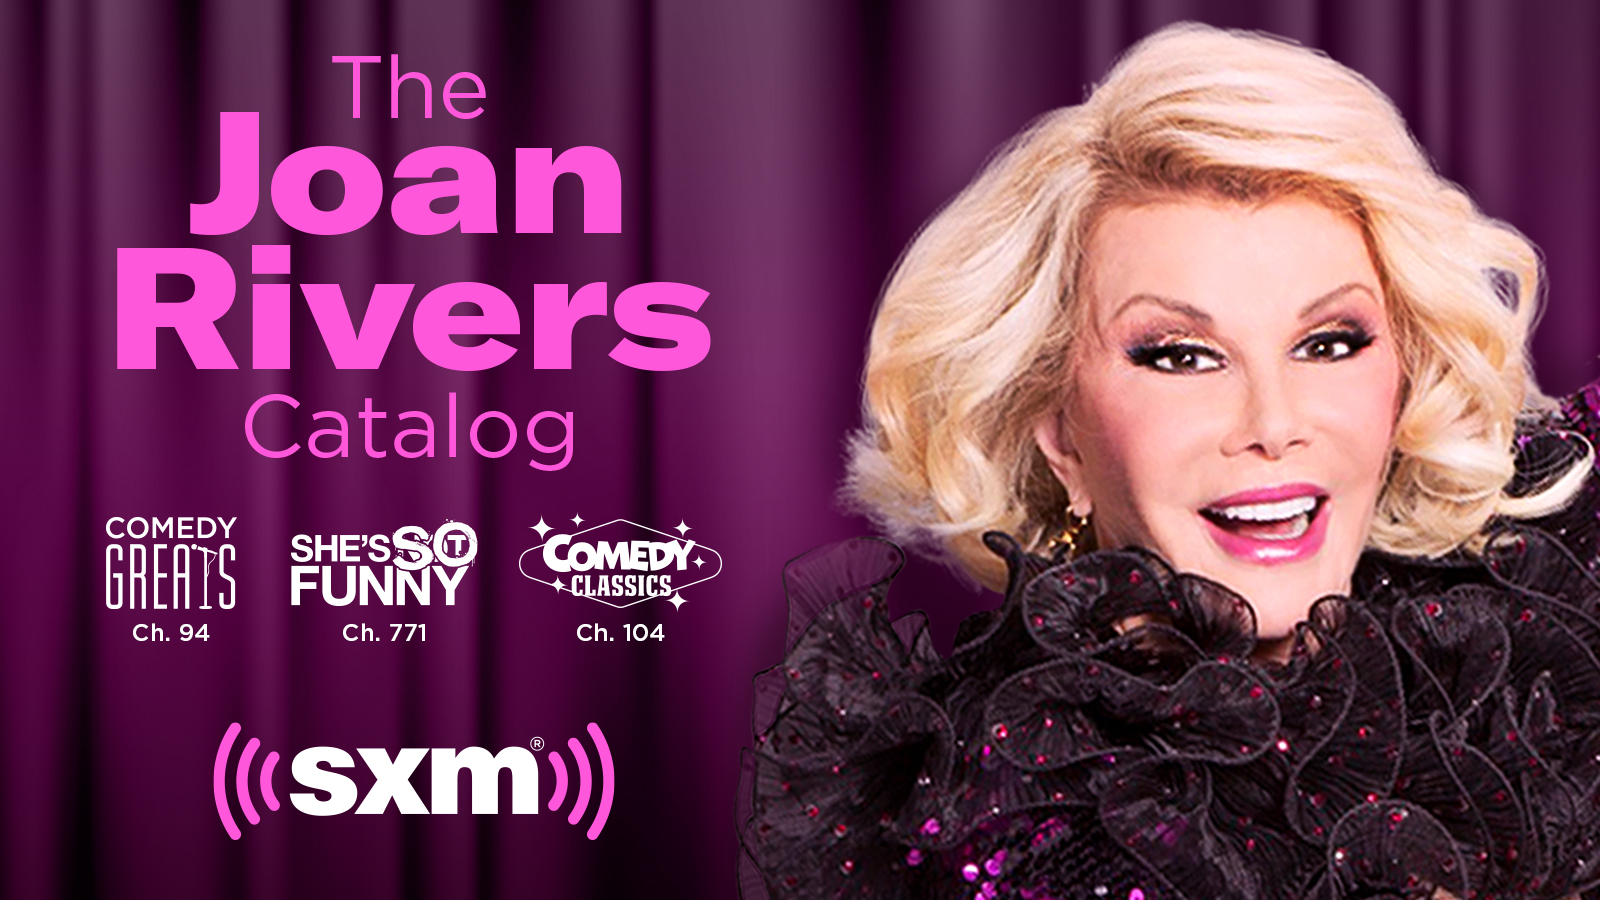 Hear never-before-released Joan Rivers comedy performances from the past 20 years